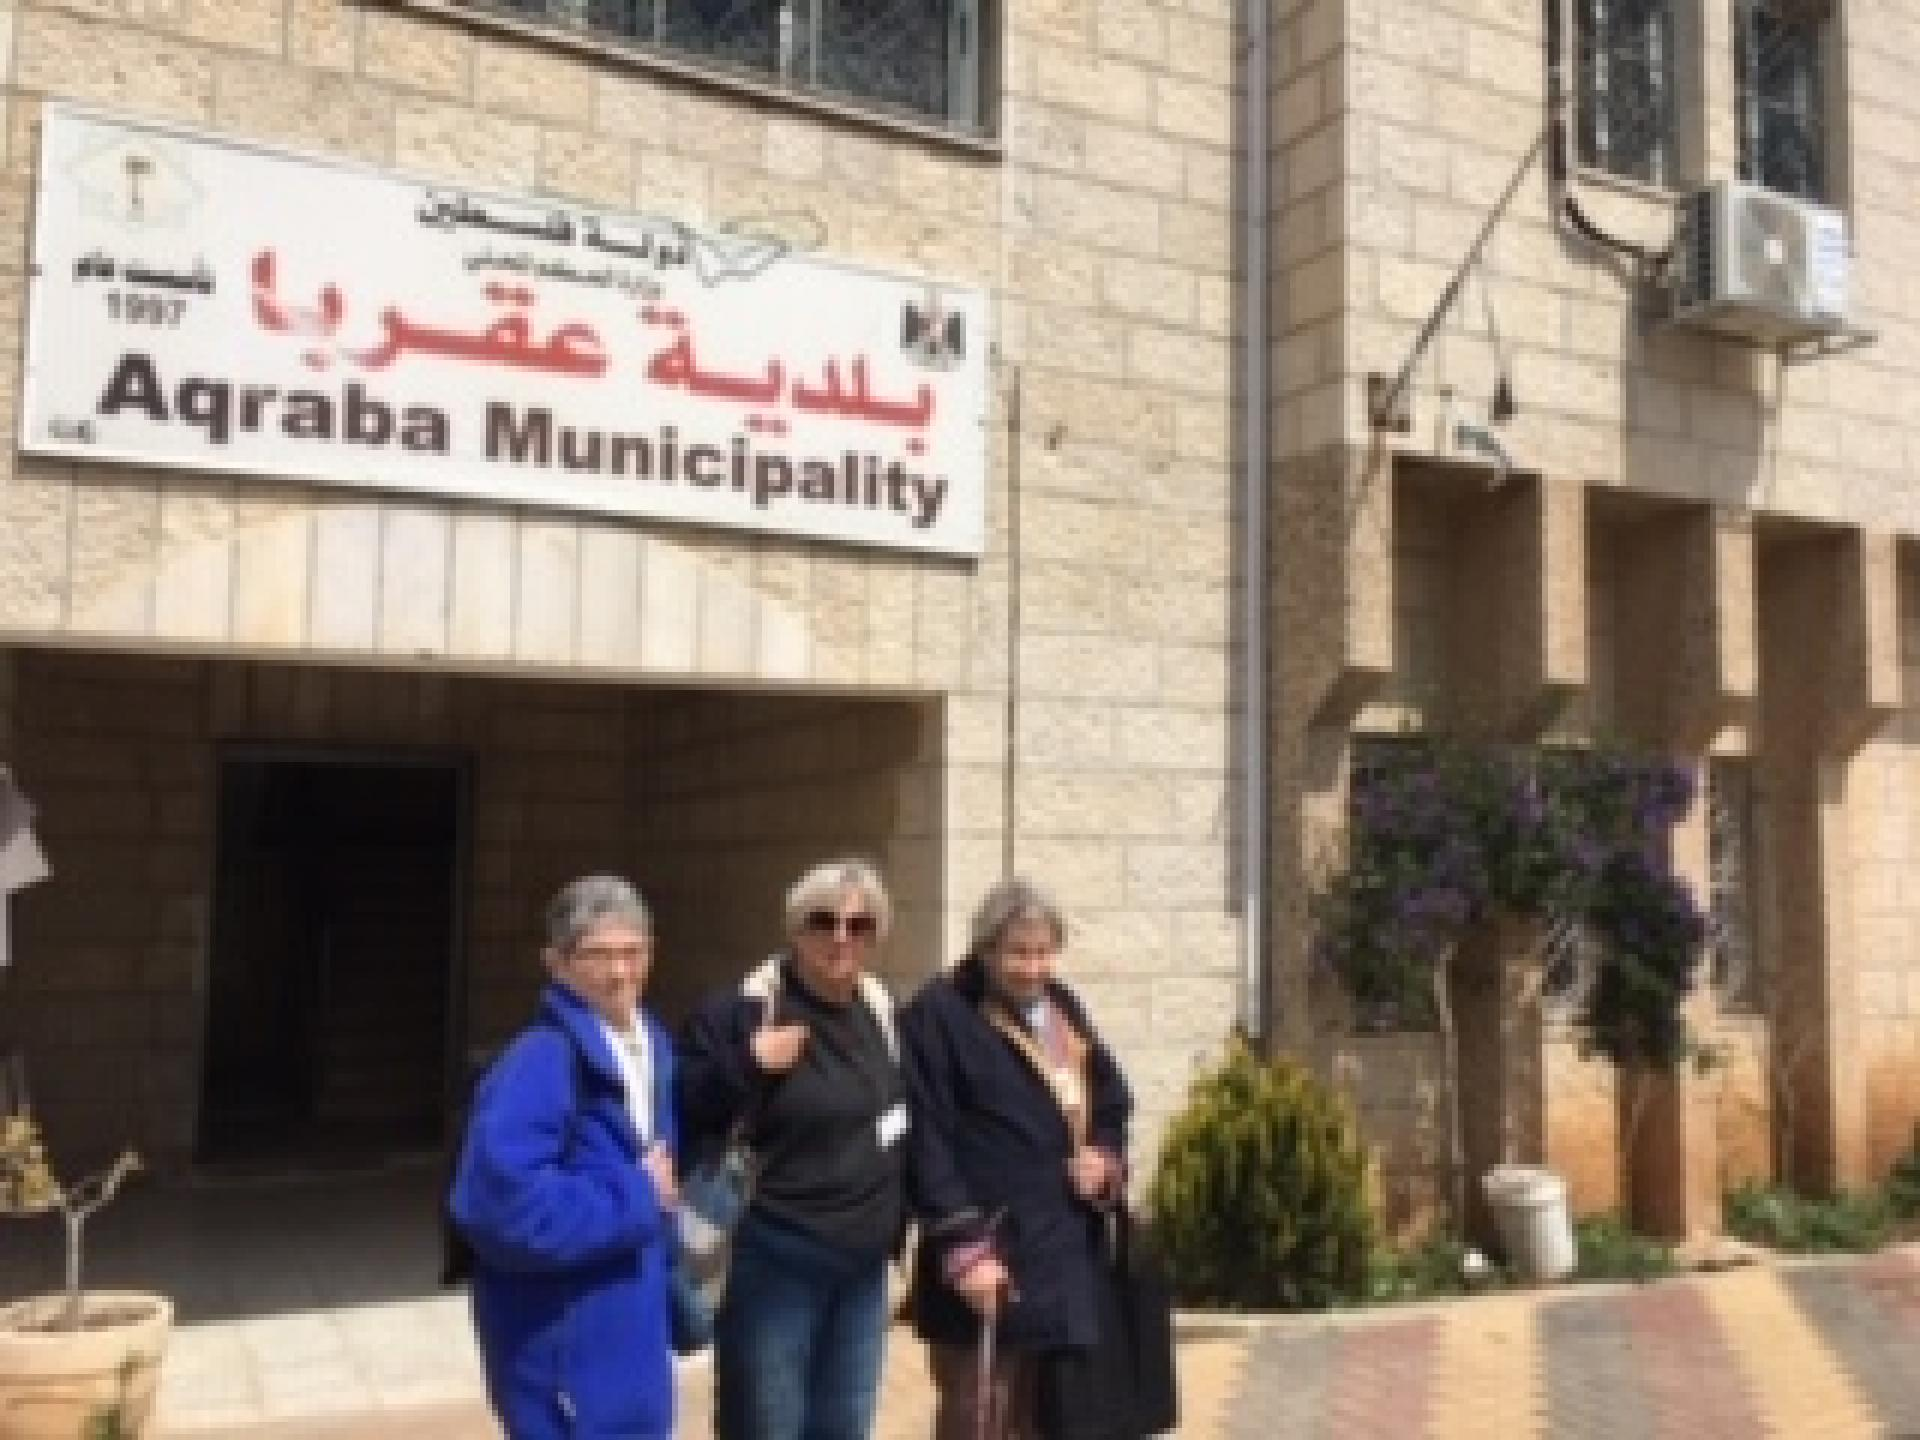 In front of Aqraba Municipality